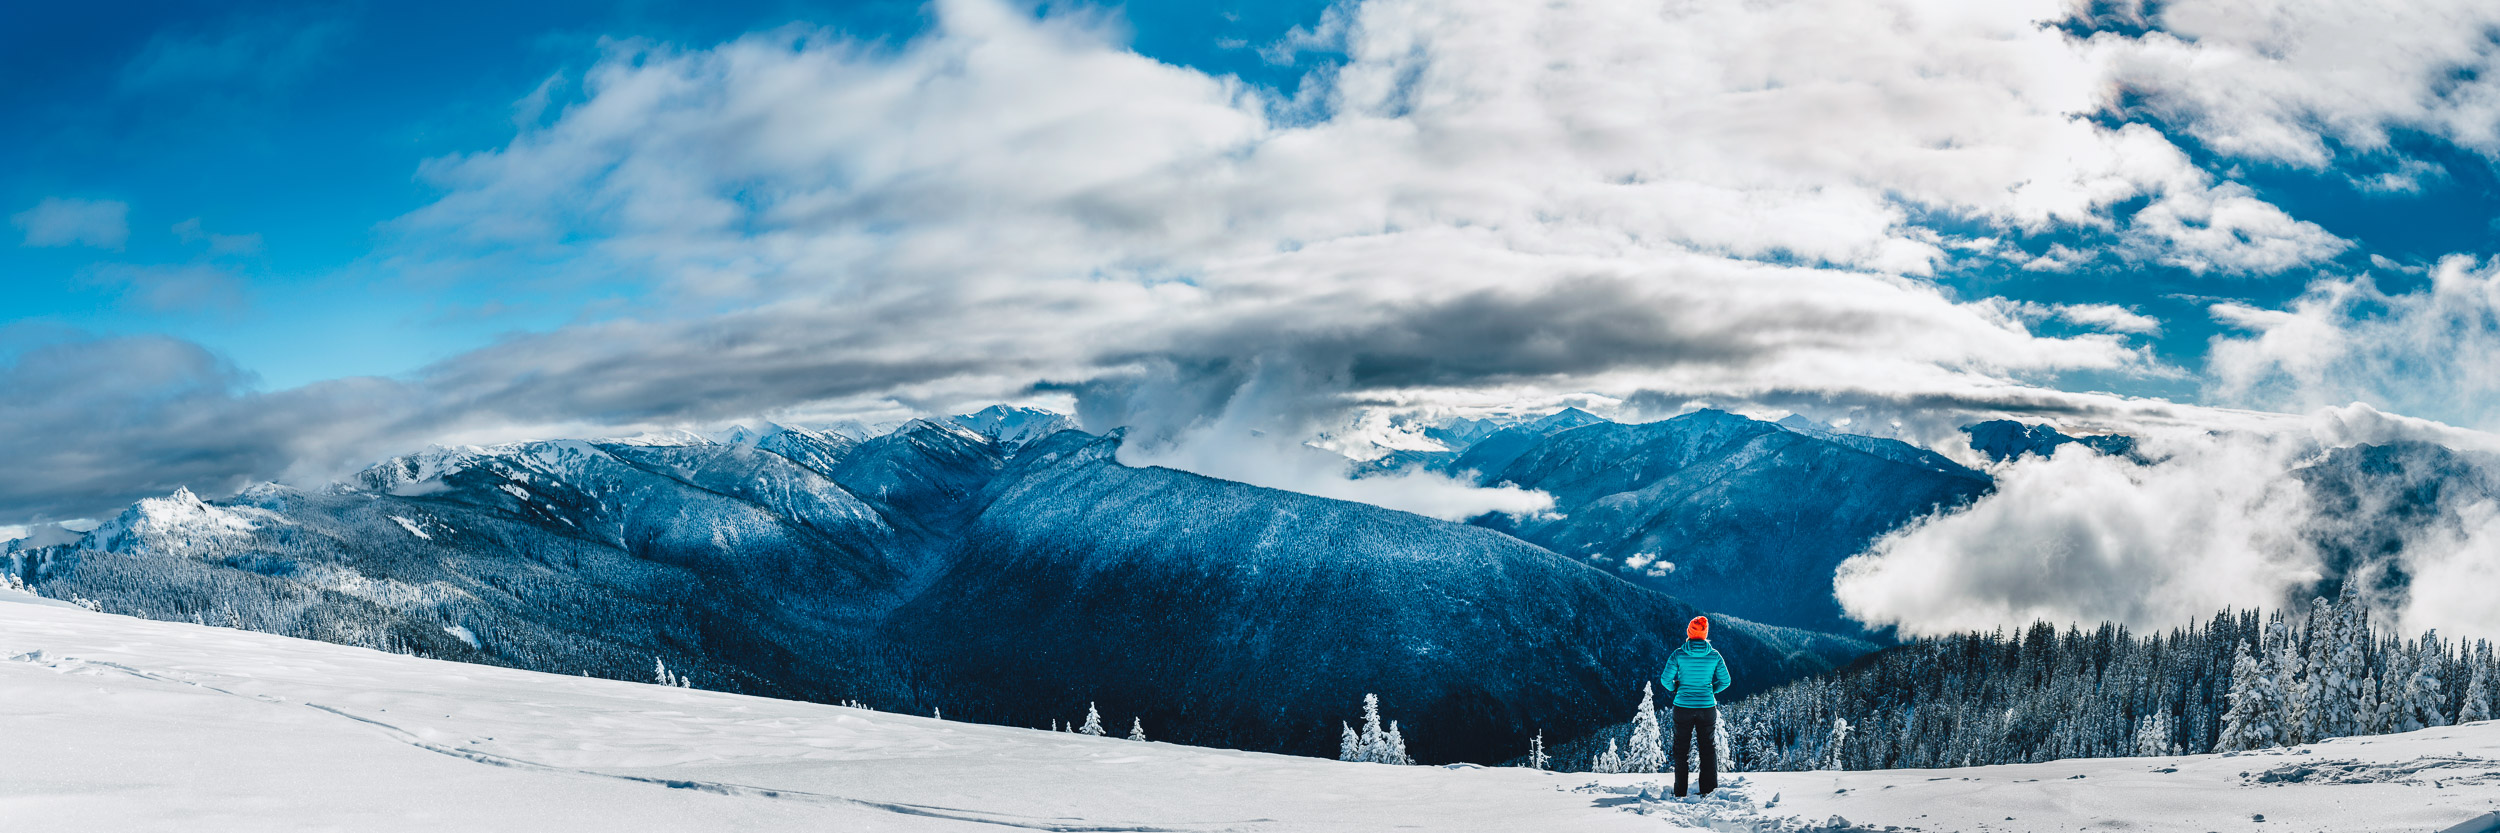 Beautiful winter wonderland from atop Hurricane Ridge overlooking Olympic National Park, Washington